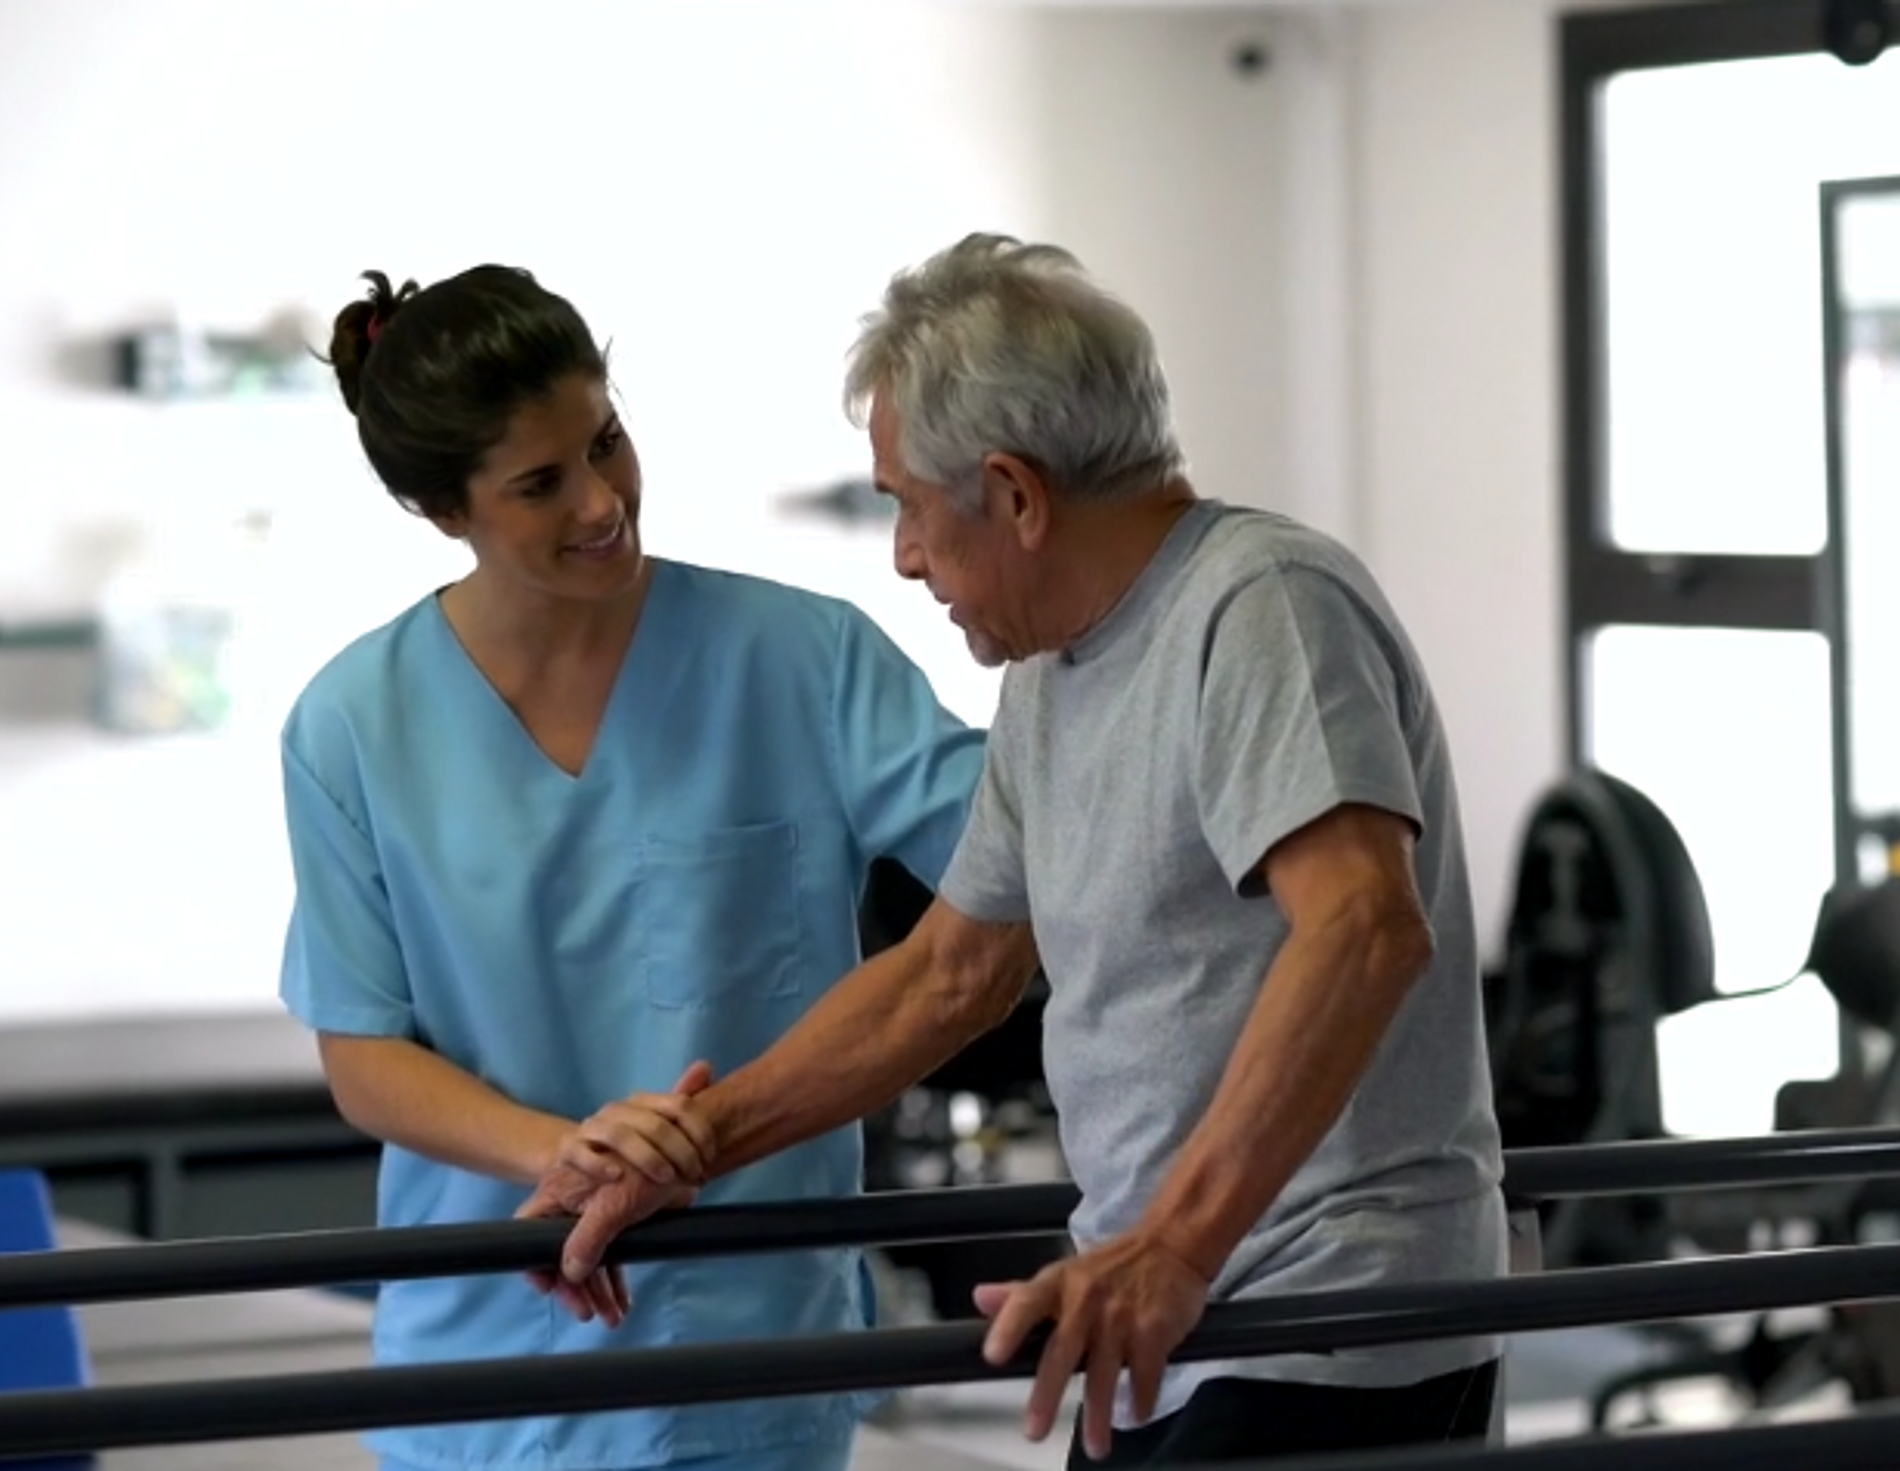 Nurse assisting a man in a rehabilitation facility